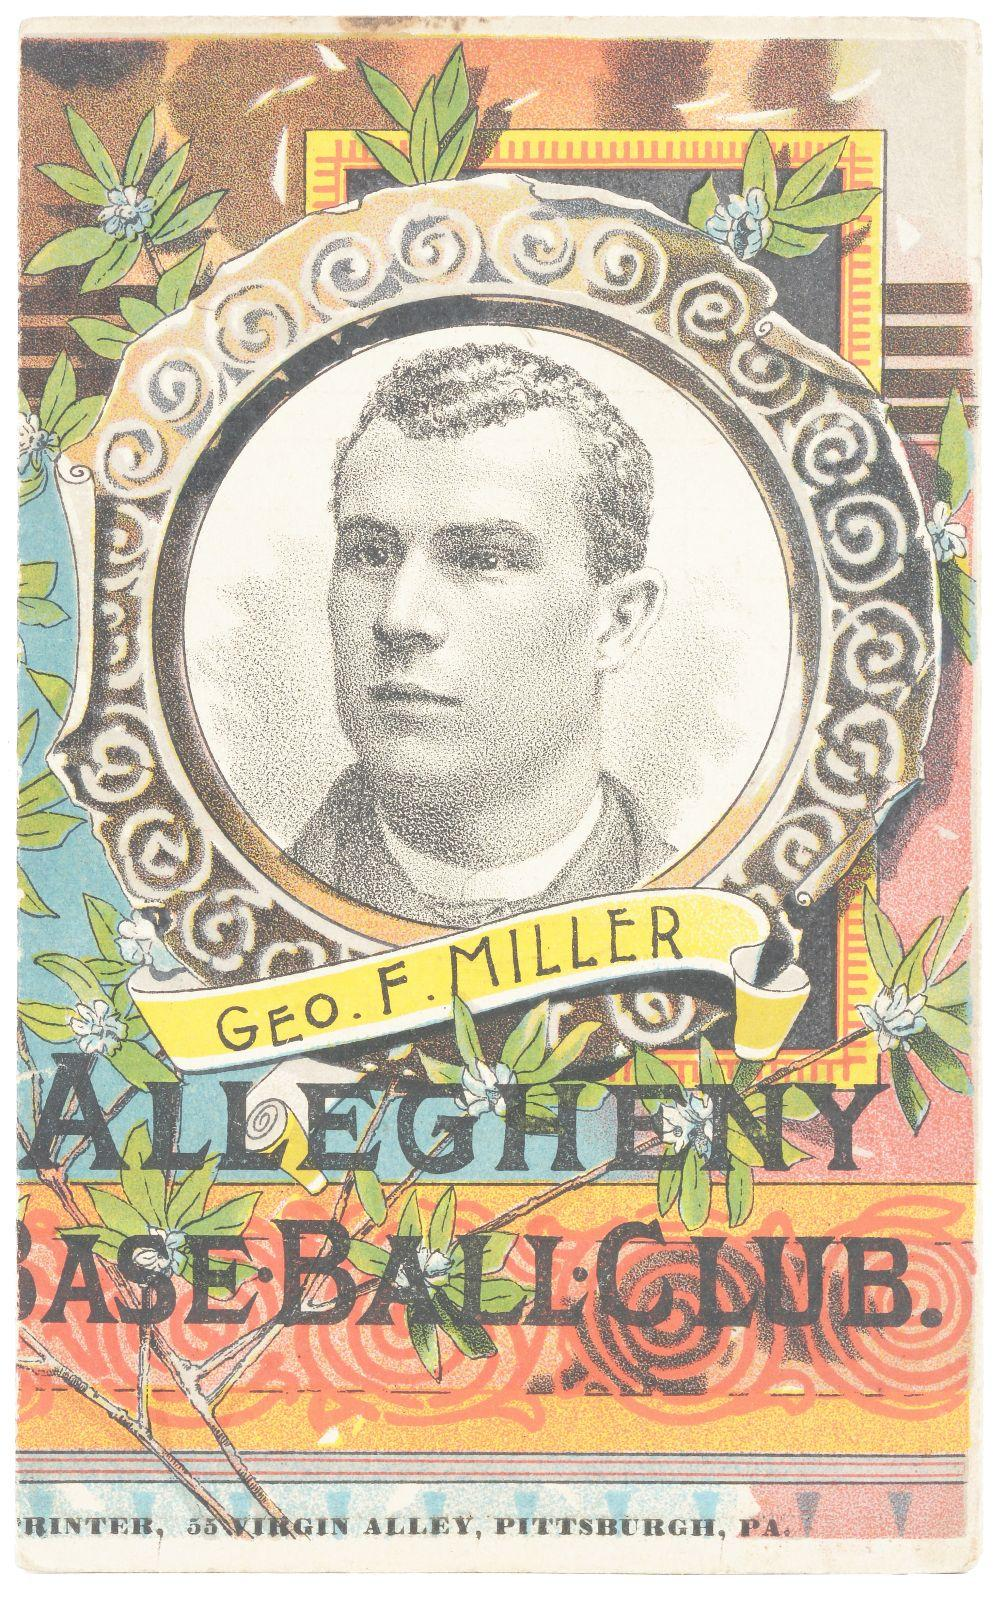 Very Early Allegheny Baseball Club Scorecard.